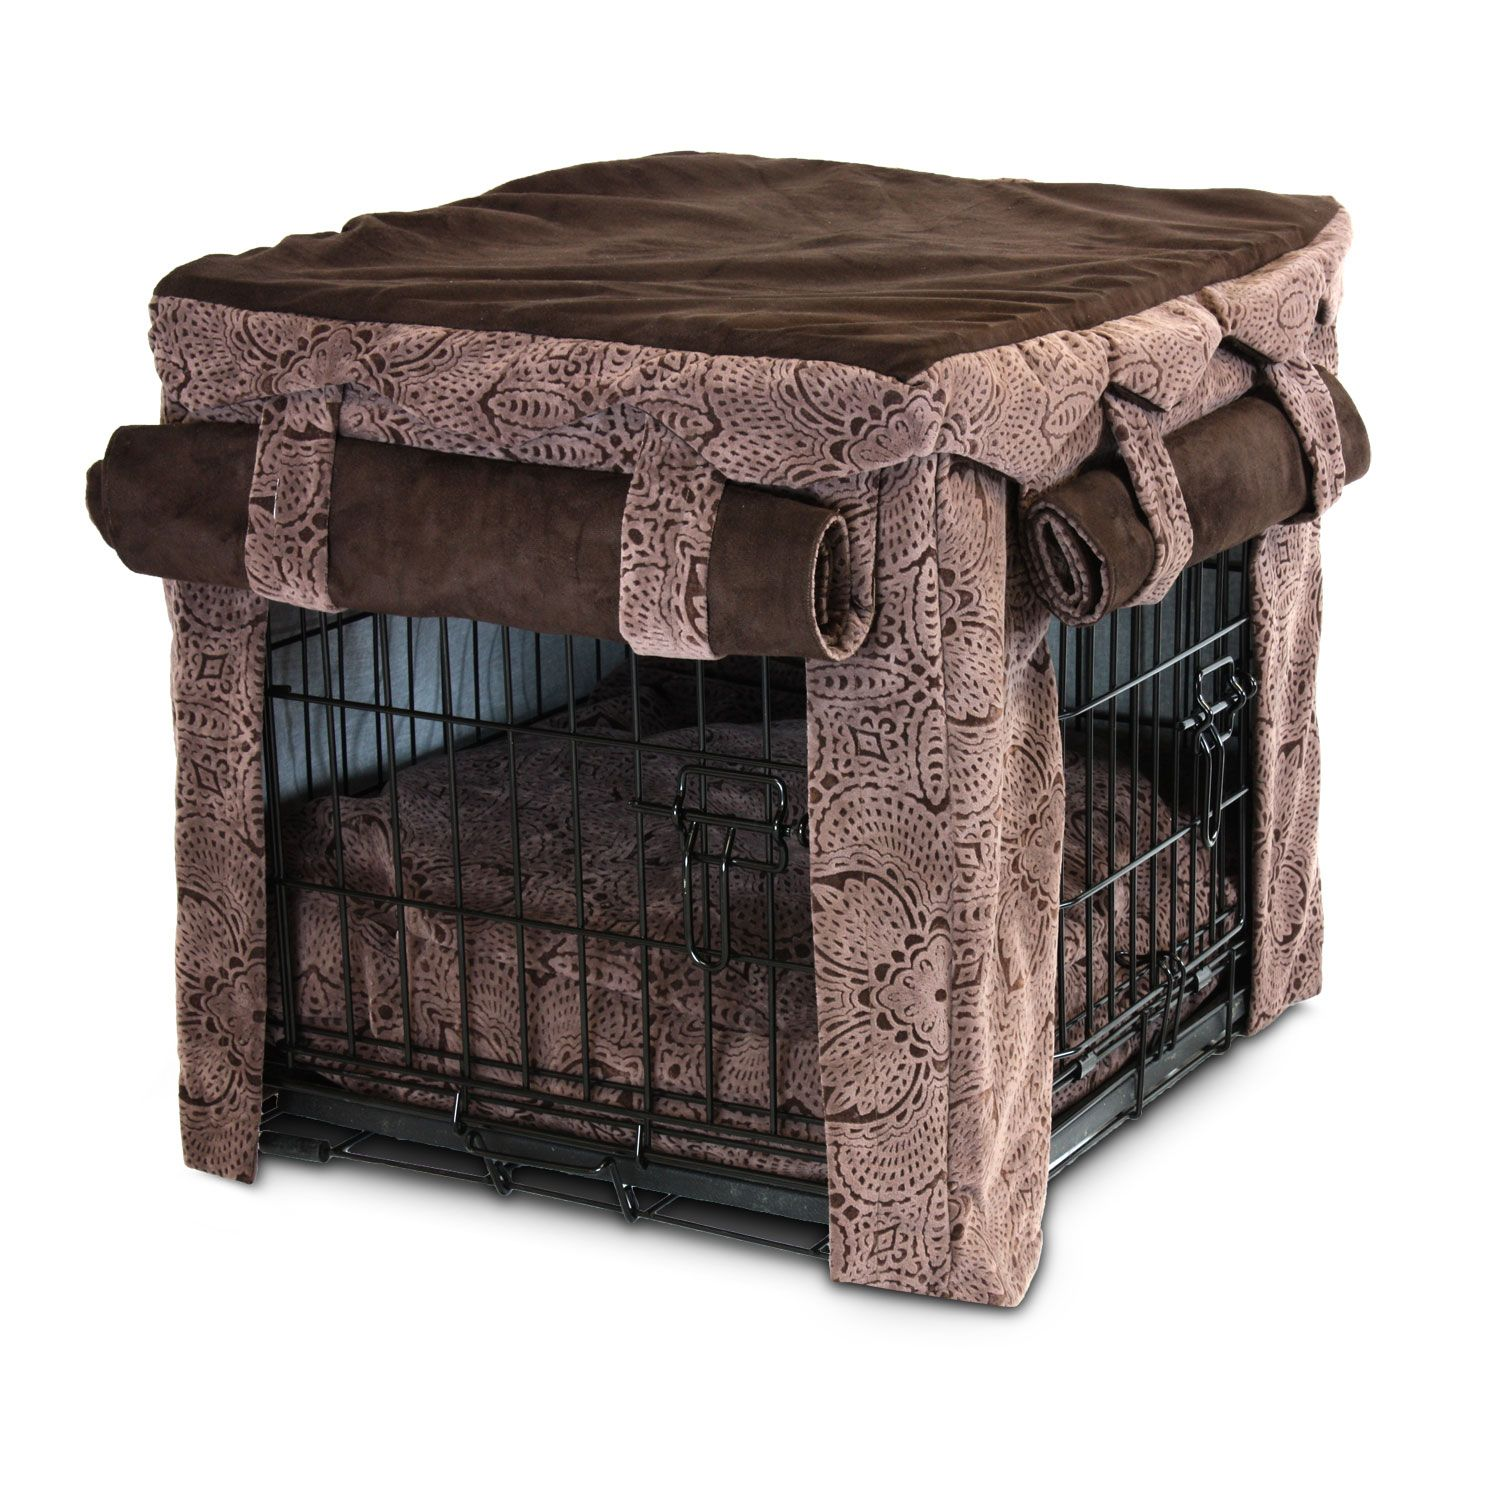 Snoozer Cabana Crate Cover with Matching Pillow Pet Bed in